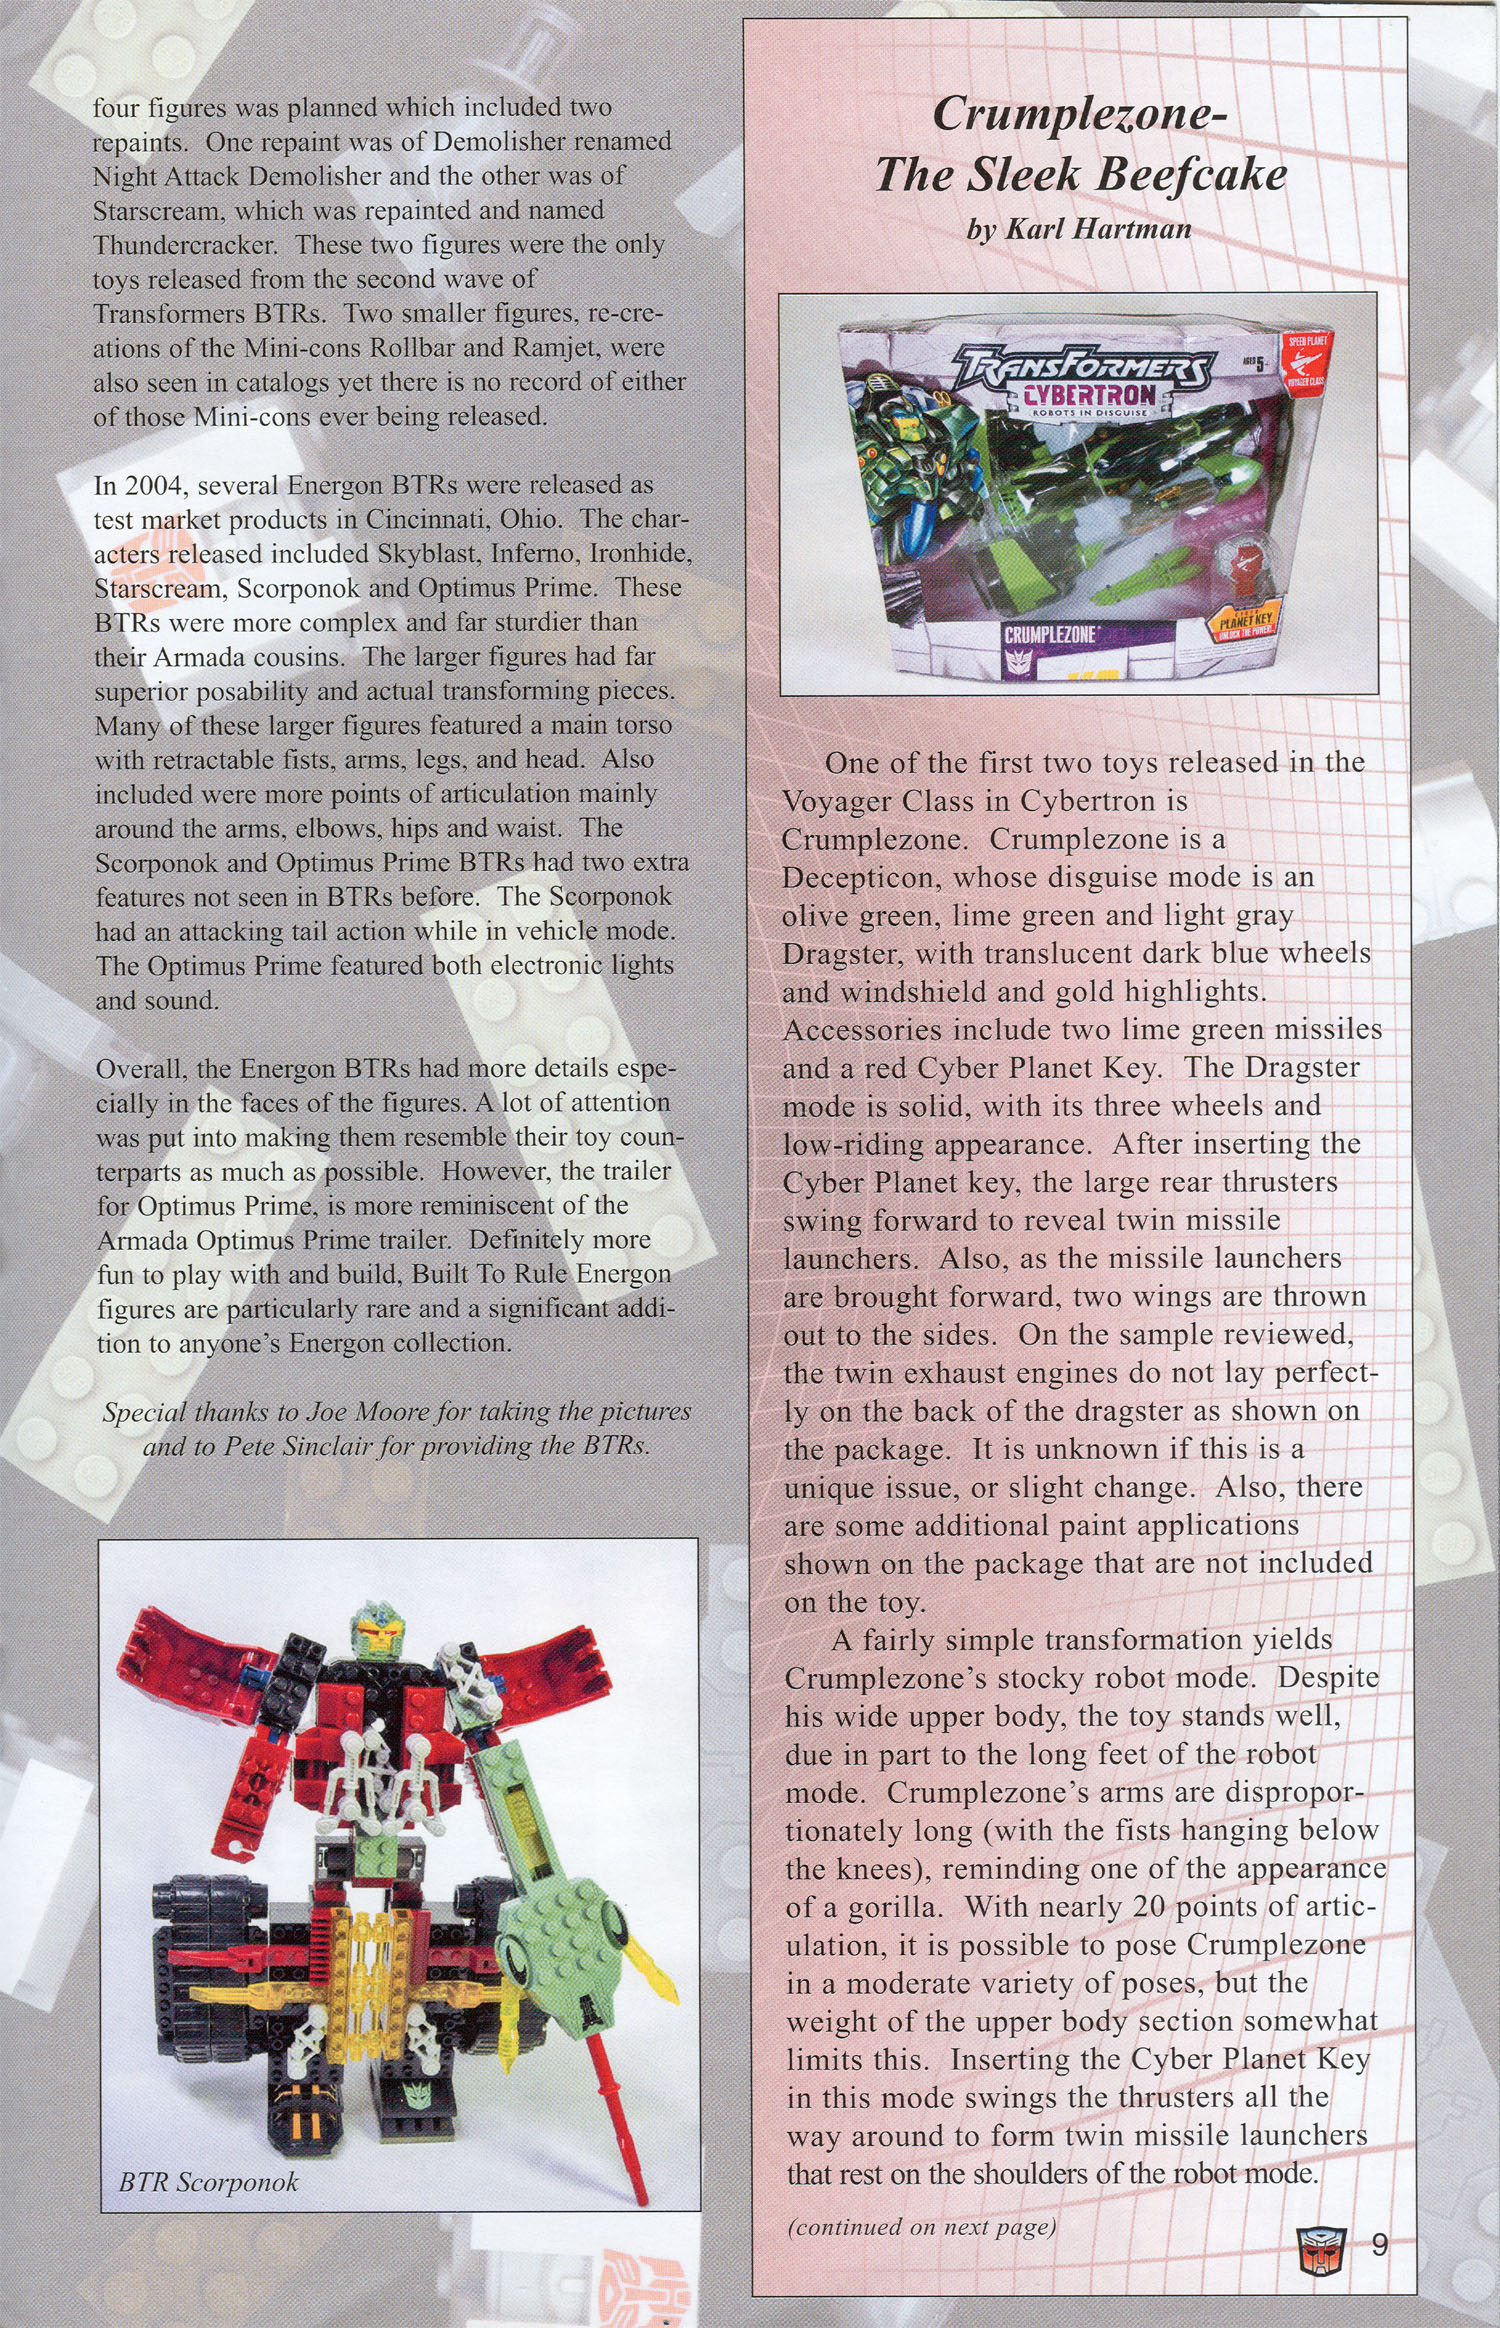 Read online Transformers: Collectors' Club comic -  Issue #3 - 9